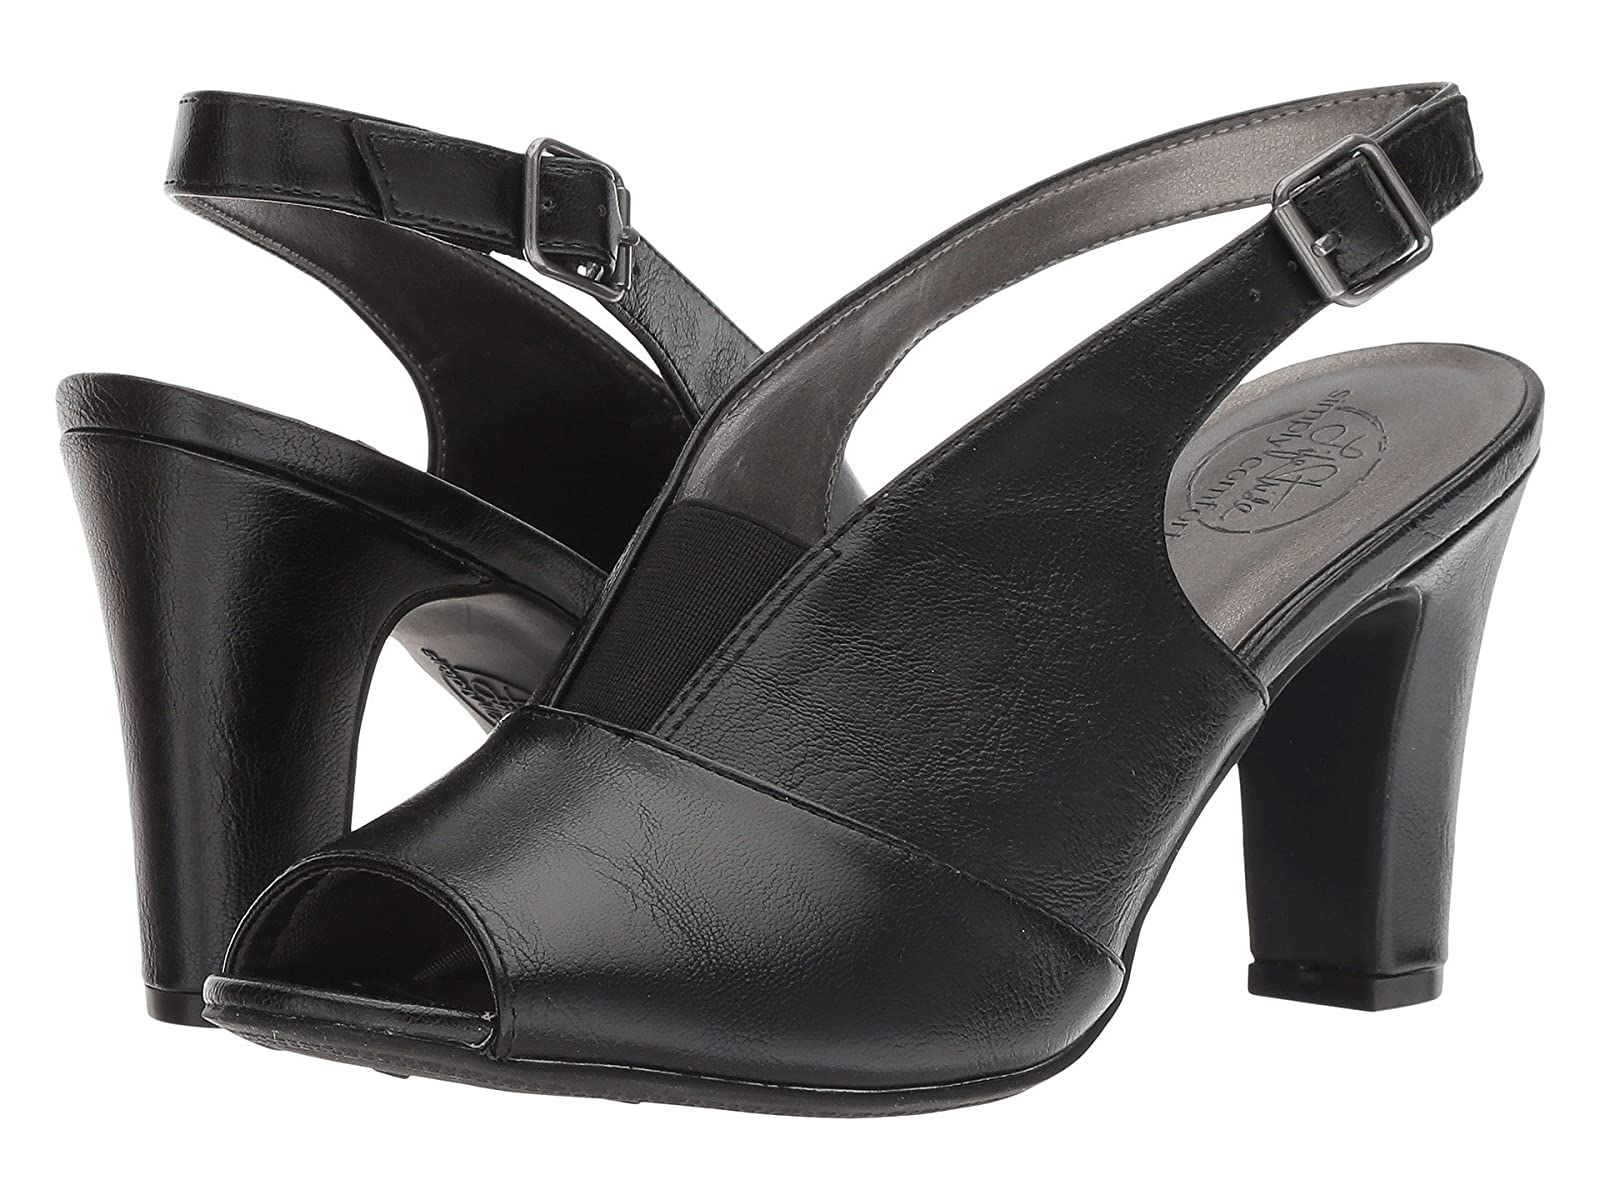 LifeStride CarineCheap and distinctive eye-catching shoes